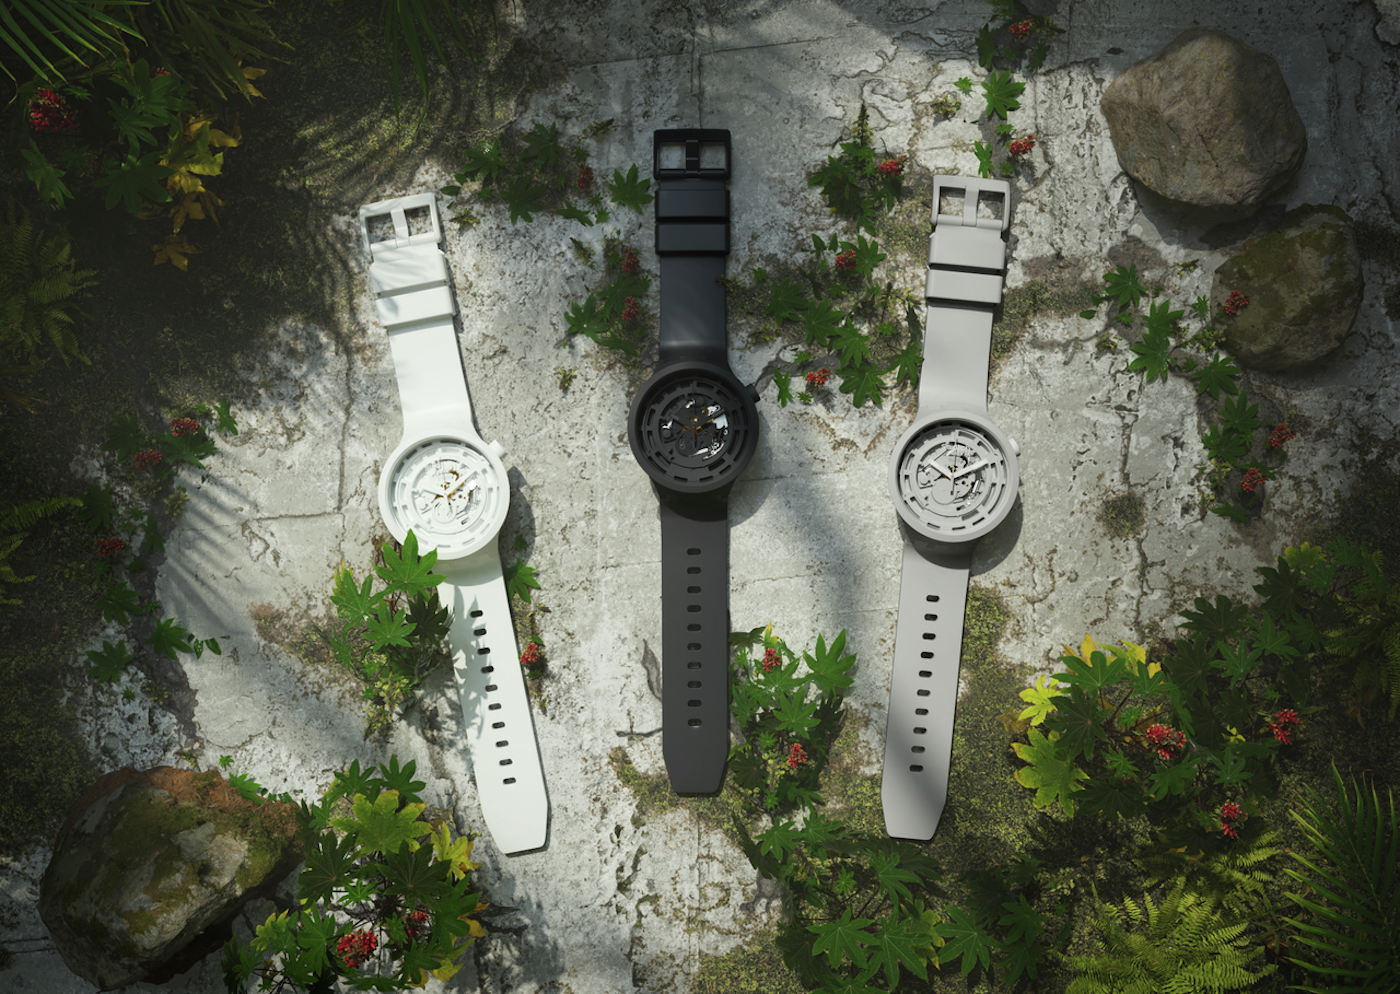 Swatch enters a new territory with the Bioceramic